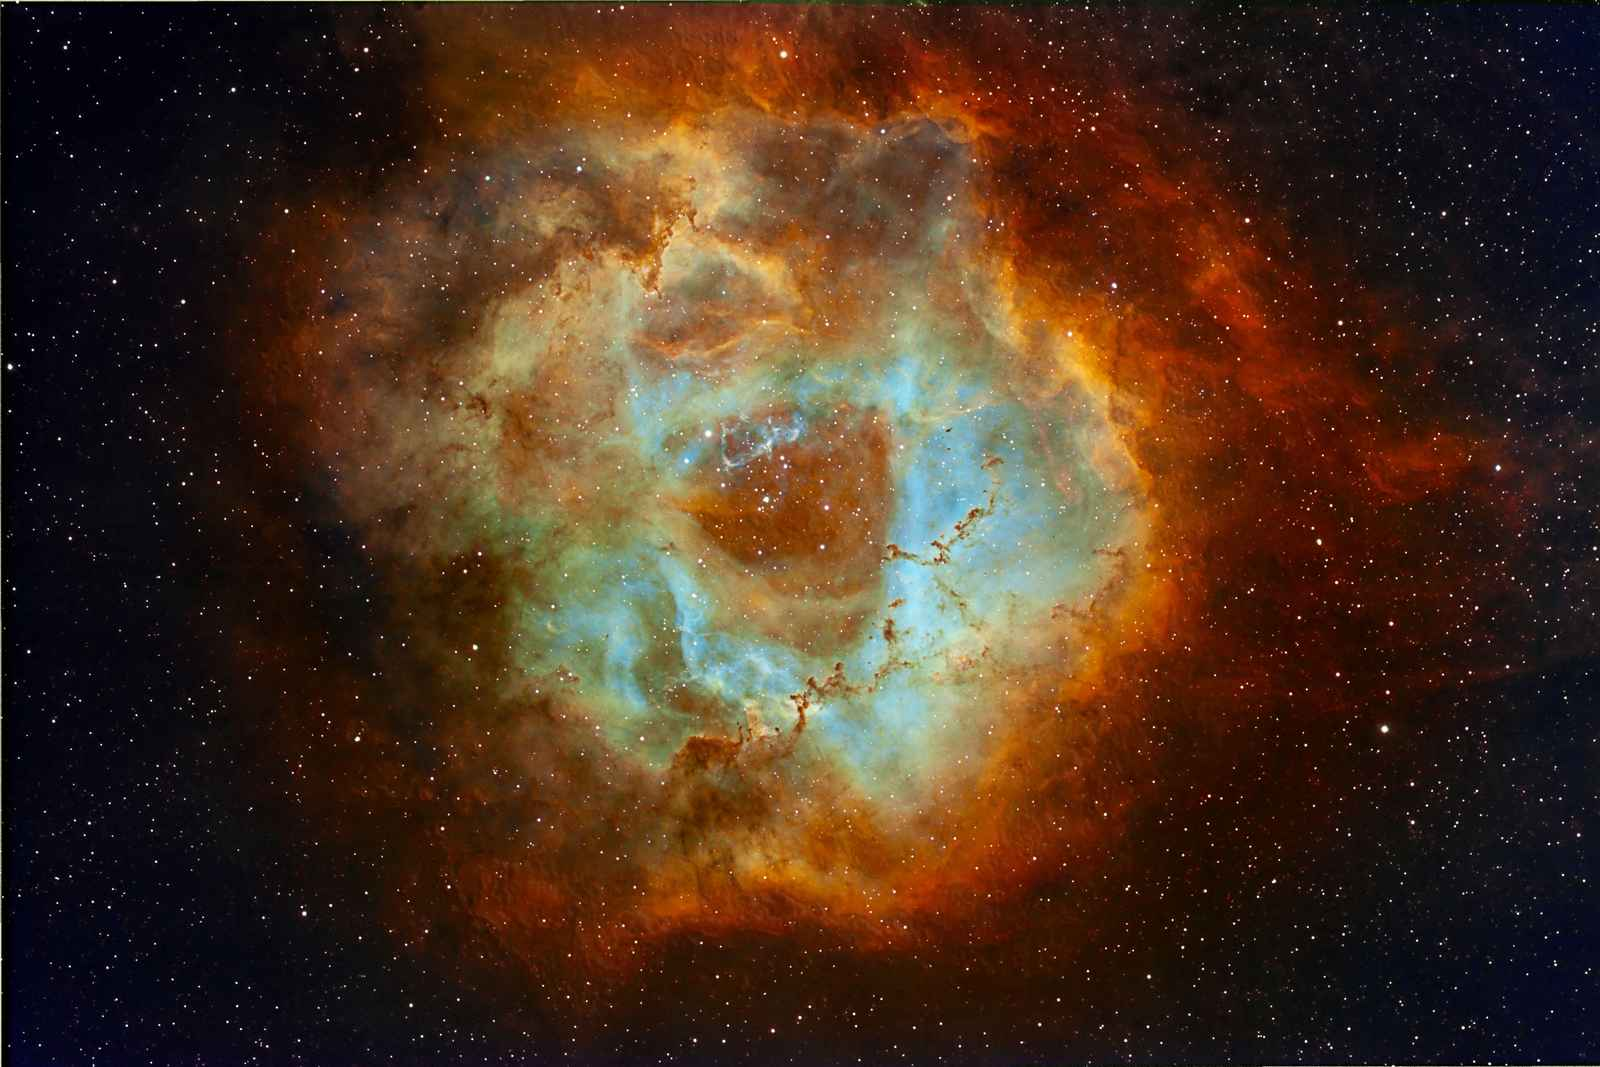 PIC BY ERIC COLES / CATERS NEWS - (PICTURED: Hubble Palette) - This incredible series of photographs were shot from a back garden and show spectacular clouds of gas surrounding stars. Eric Coles, 70, captured the incredible images, which are normally invisible to the naked eye, over the course of the last year from his home in Illinois, USA. Using different filters on his five telescopes, he was able to bring out the shapes and patterns created by different gases that have absorbed energy from nearby stars. SEE CATERS COPY